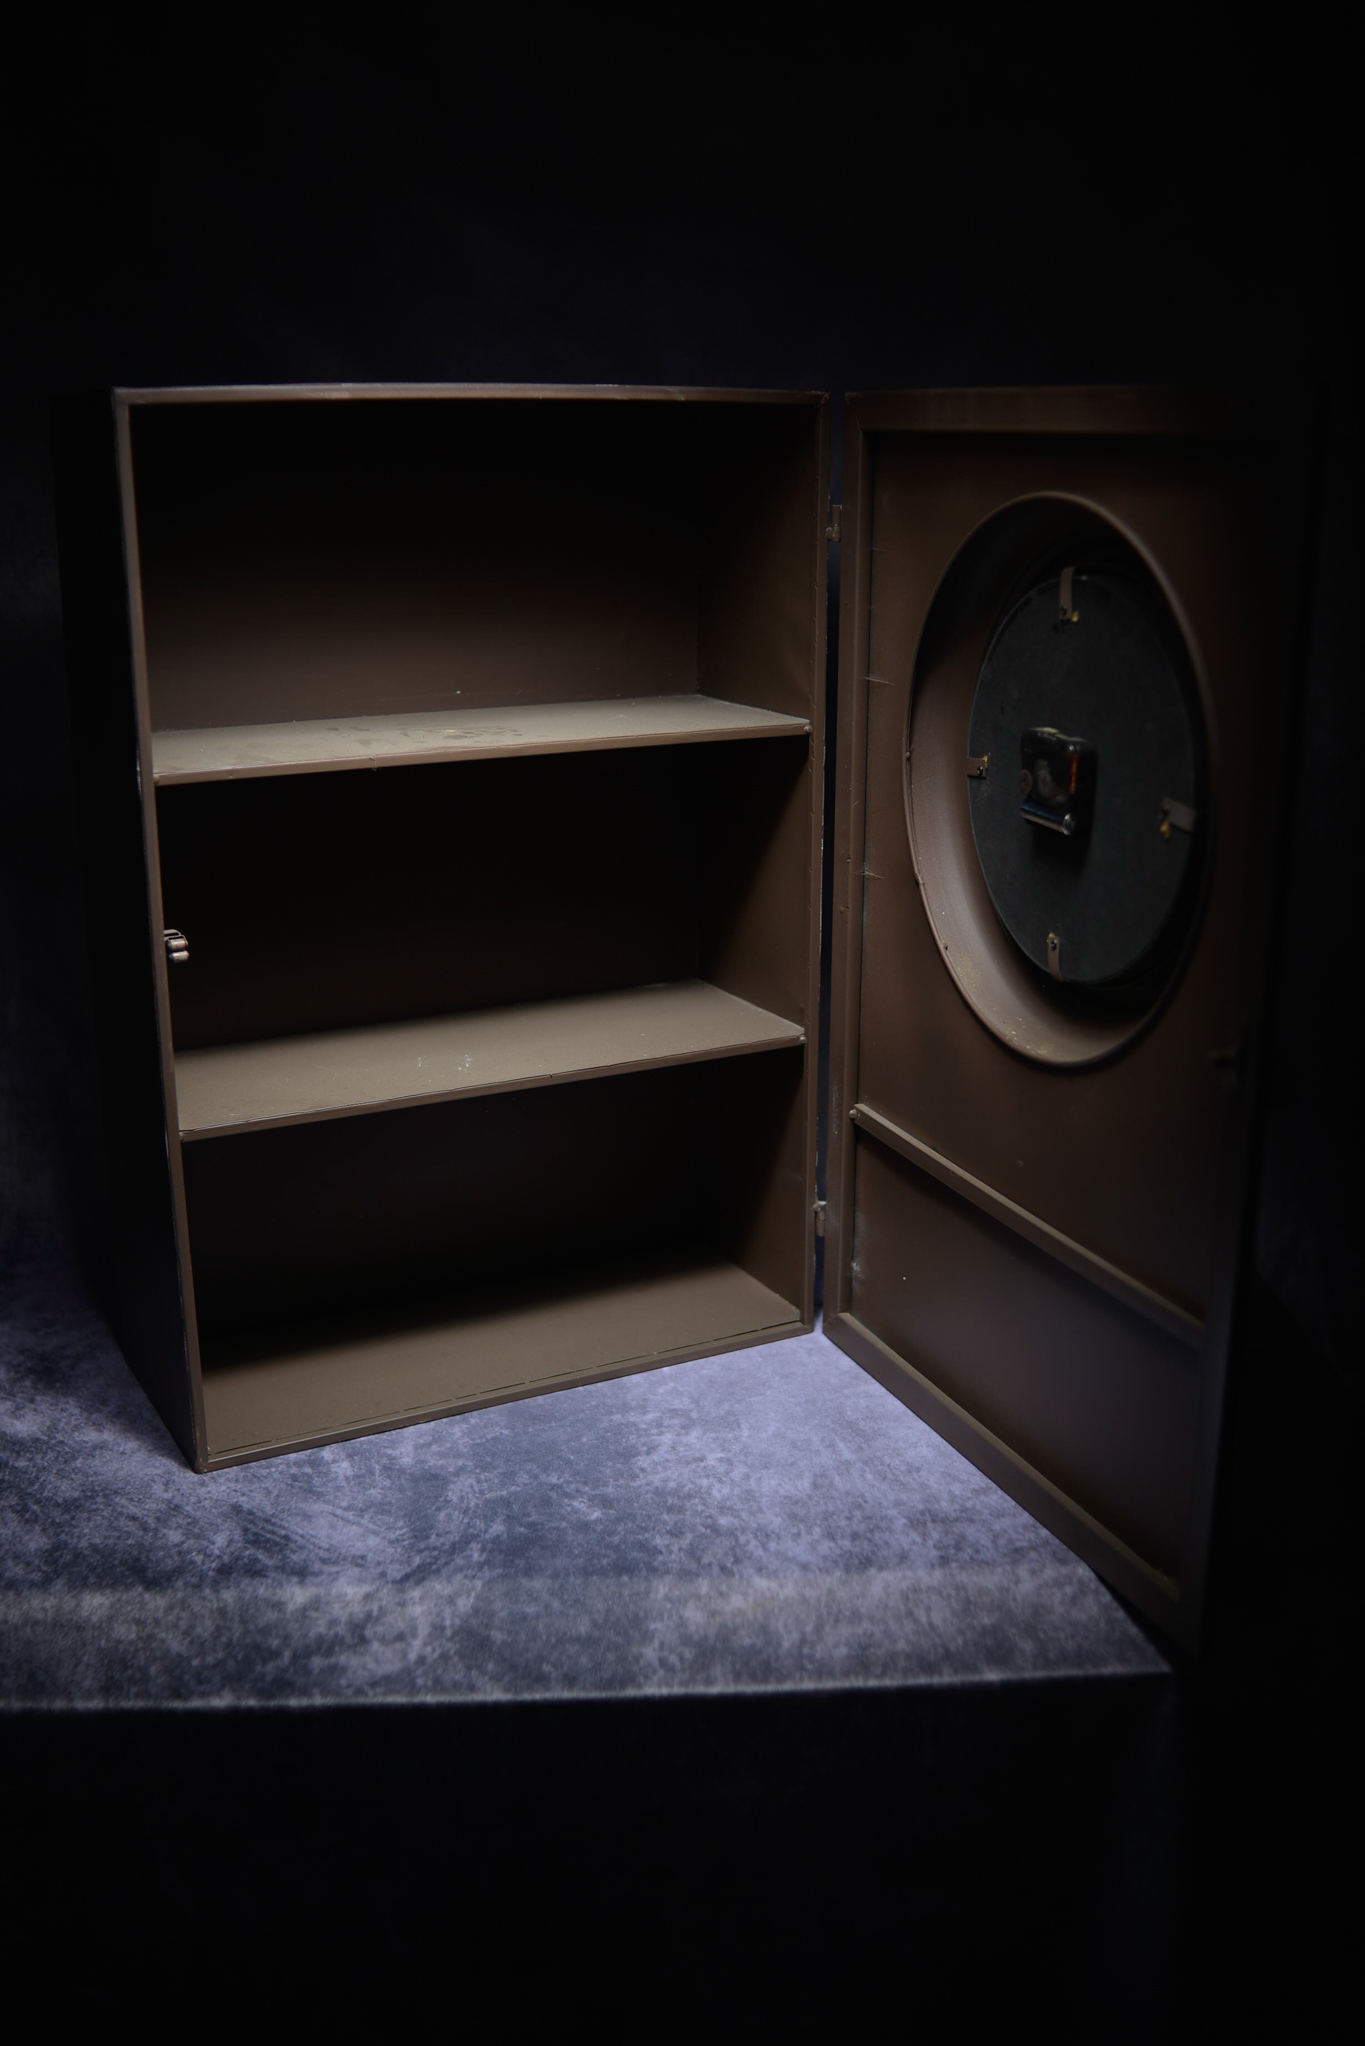 Retro Metal Industrial Cabinet Converted Into A Clock - Image 2 of 2